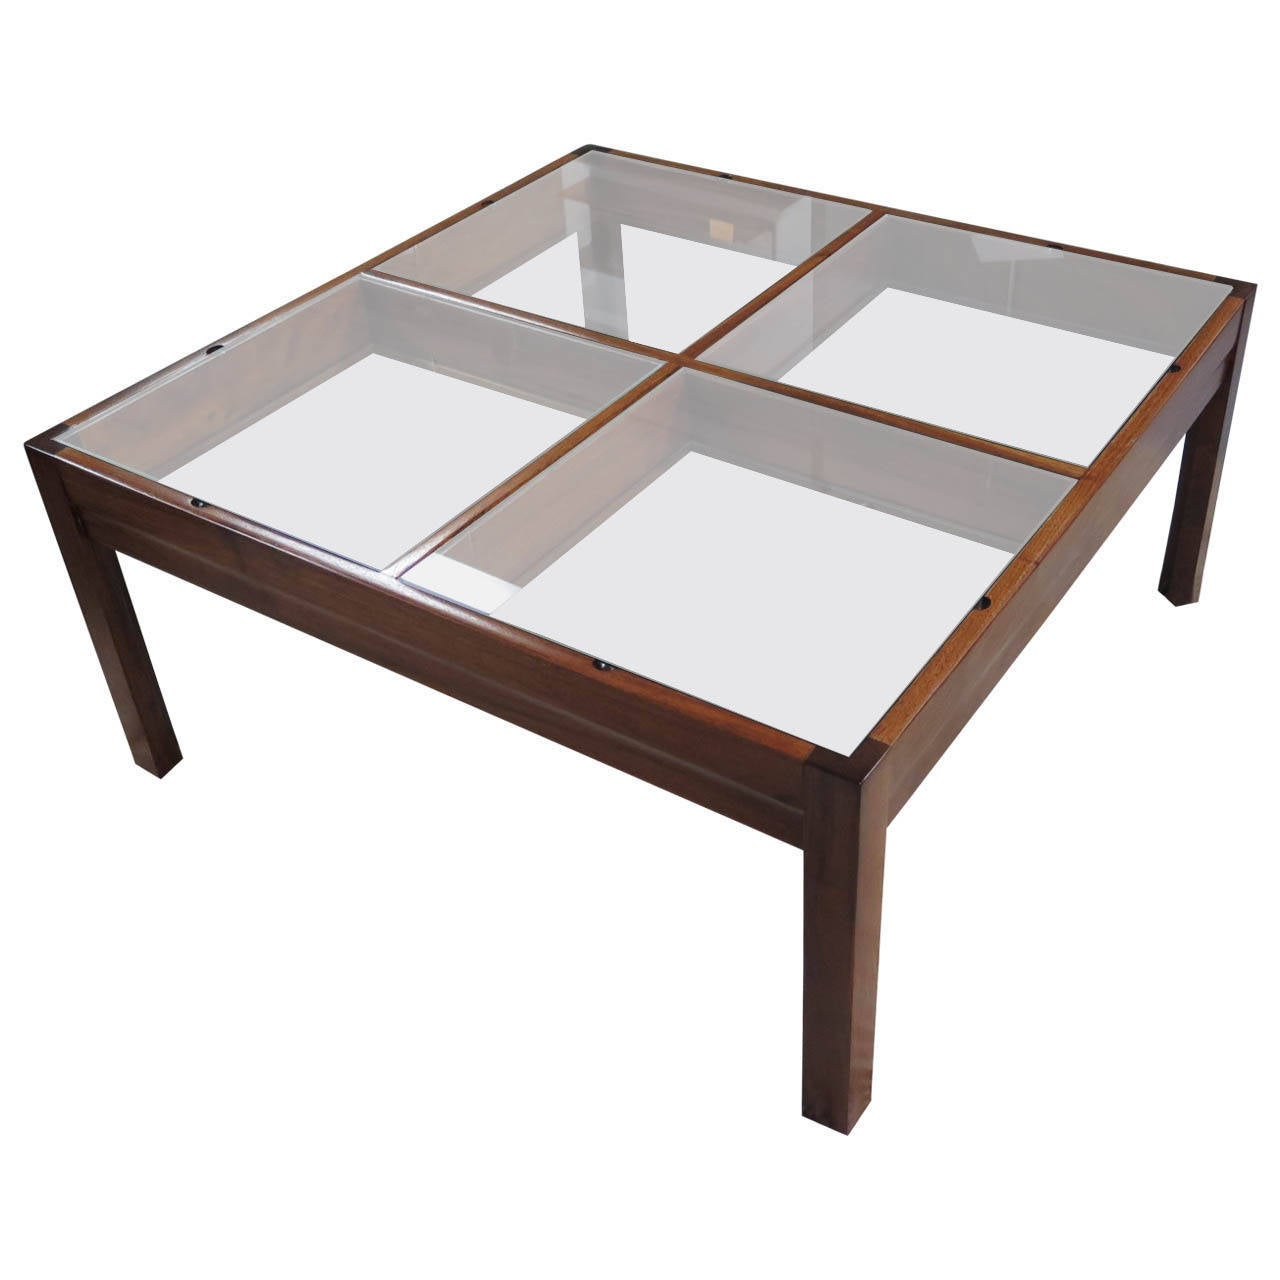 Unusual Display Coffee Table 1960 At 1stdibs